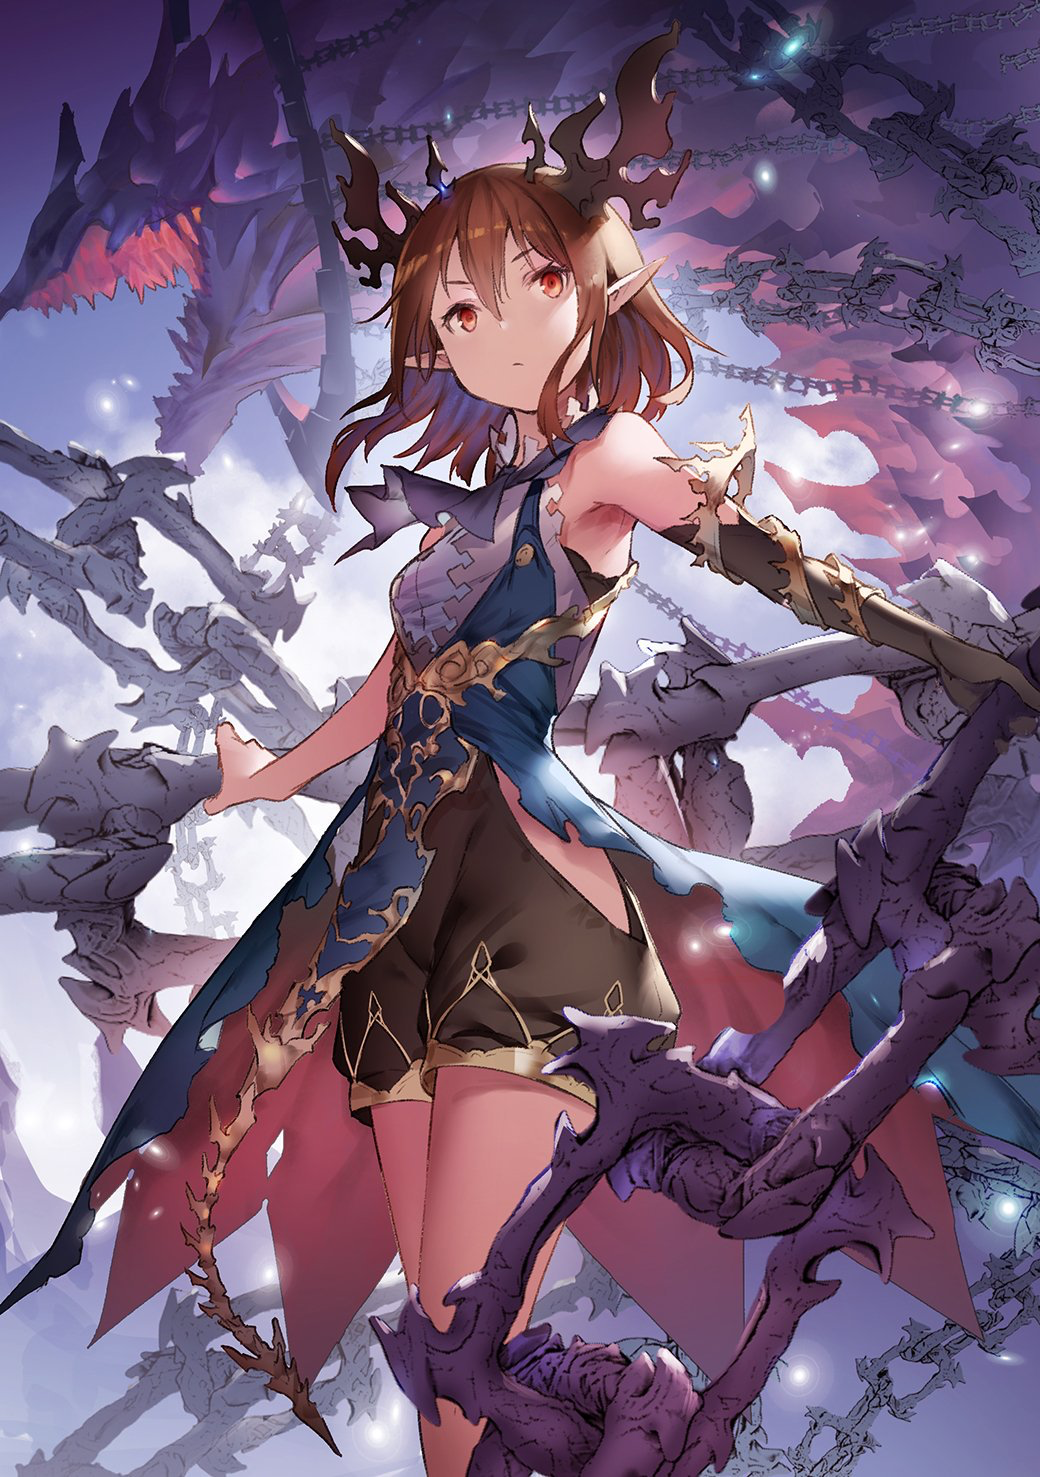 Female summoner anime art girl manga art manga anime avatar anime